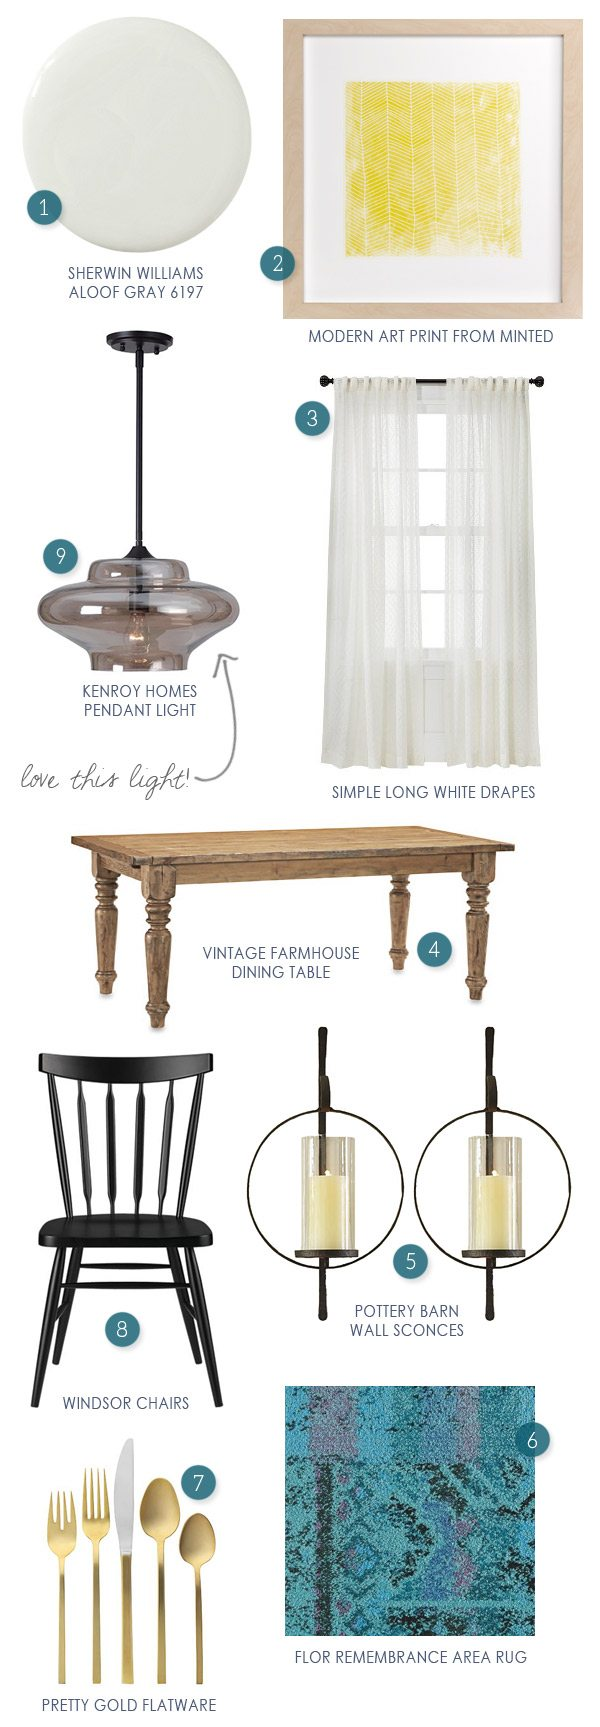 Dining Room Makeover Inspiration from @cydconverse